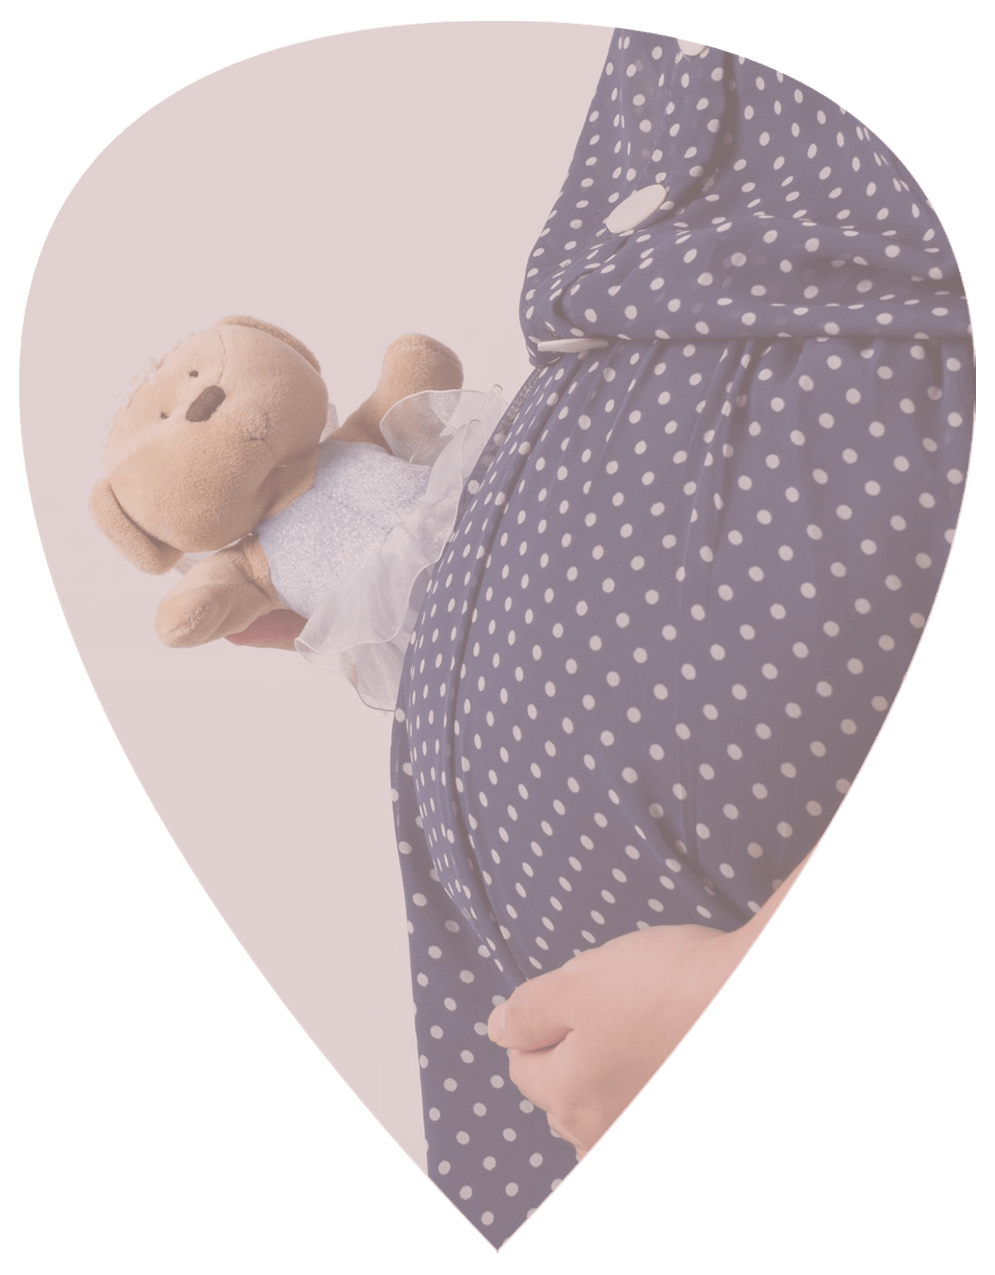 miscarriage-pregnancy-loss